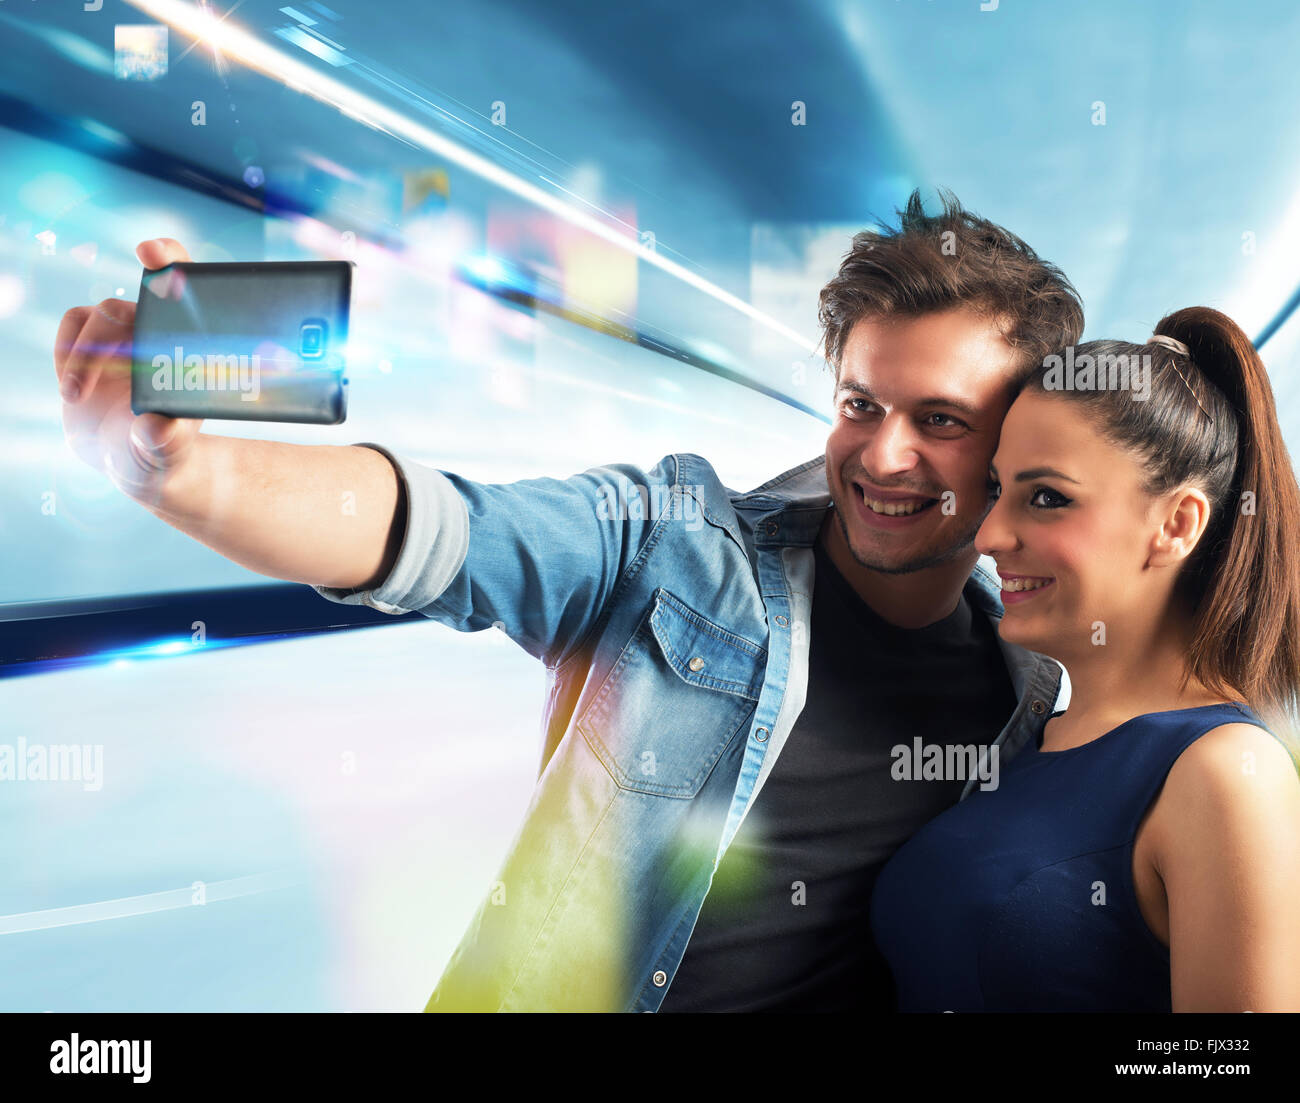 Smiling couple selfie - Stock Image